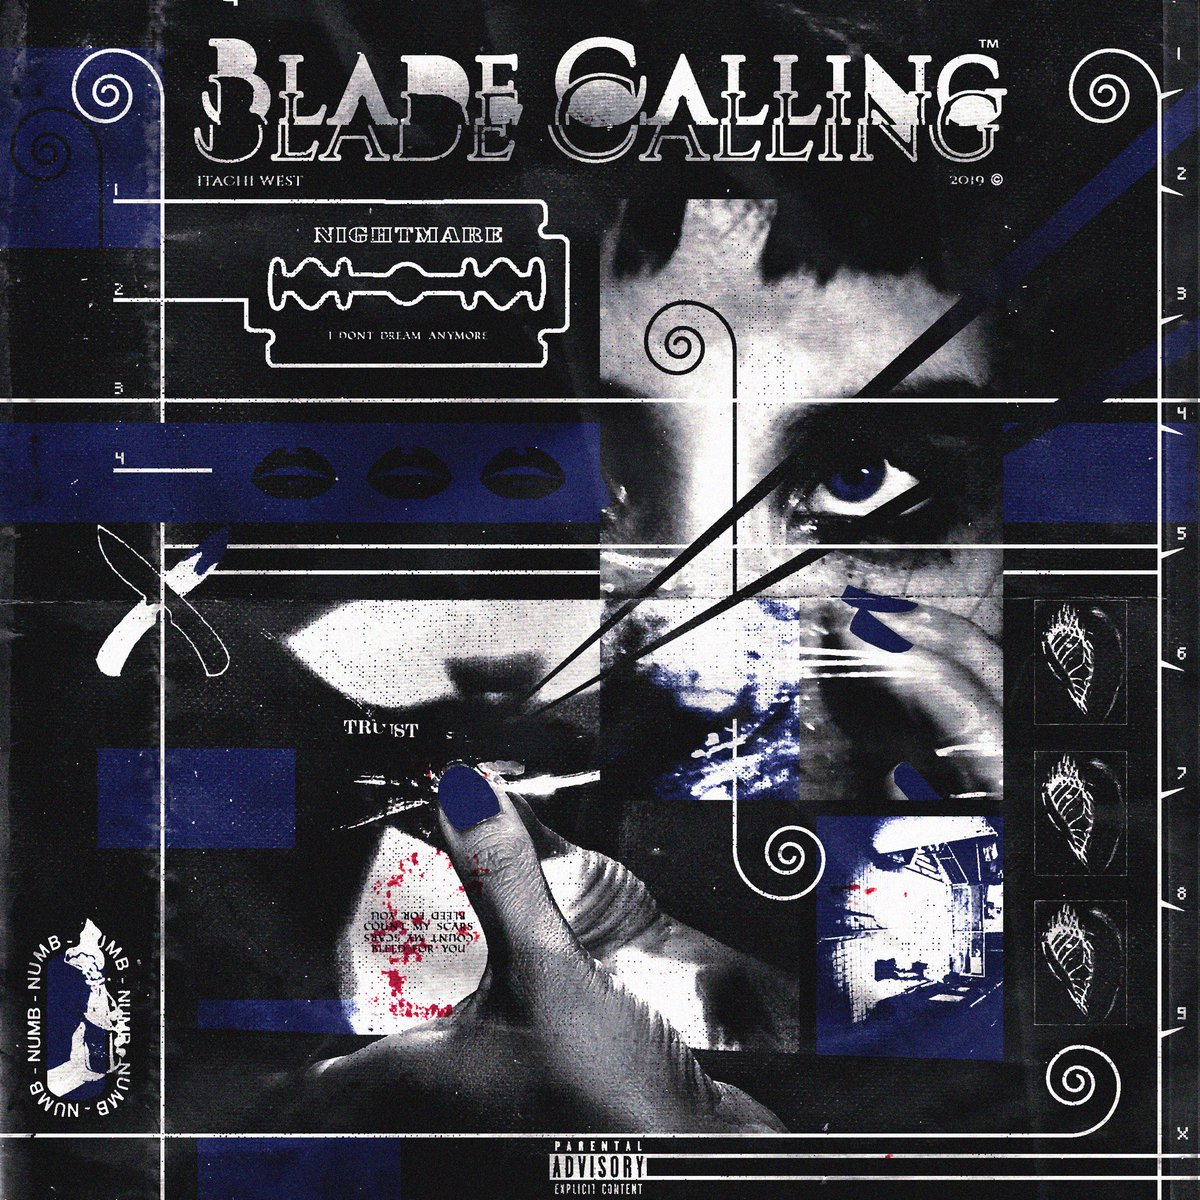 « Blade Calling » the NEW ALBUM releasing, on all streaming services 11/29. I been real fucked up y'all. Let's be fucked up together <br>http://pic.twitter.com/HyZSZk3nKl